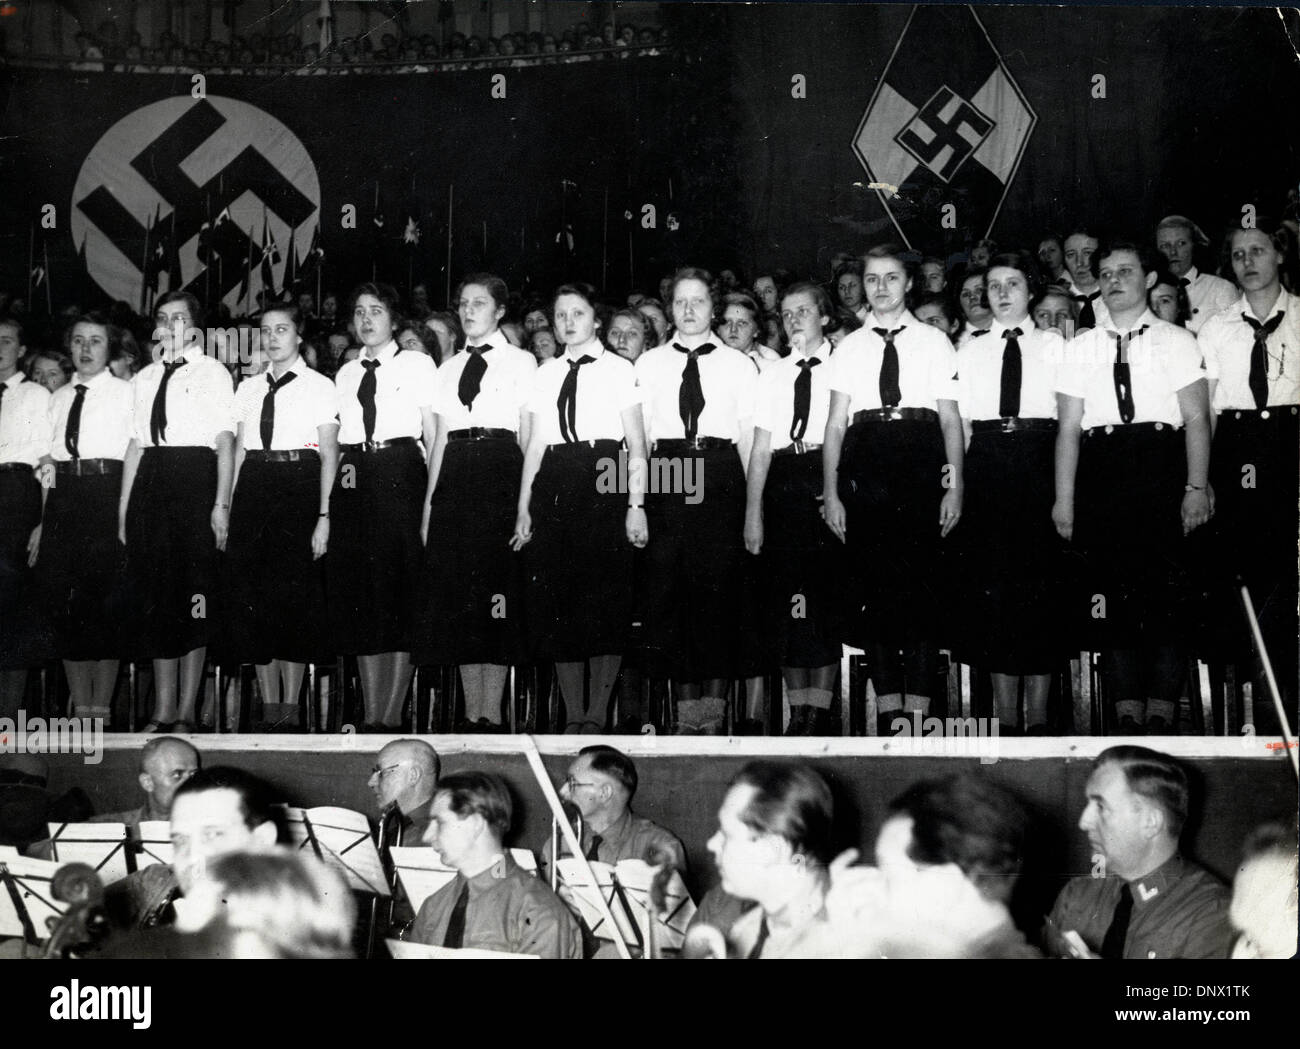 Feb. 10, 1935 - Berlin, Germany - Giant Hitler Girls' Parade: on February 10th, 1935, a big Hitler Girls' parade Stock Photo